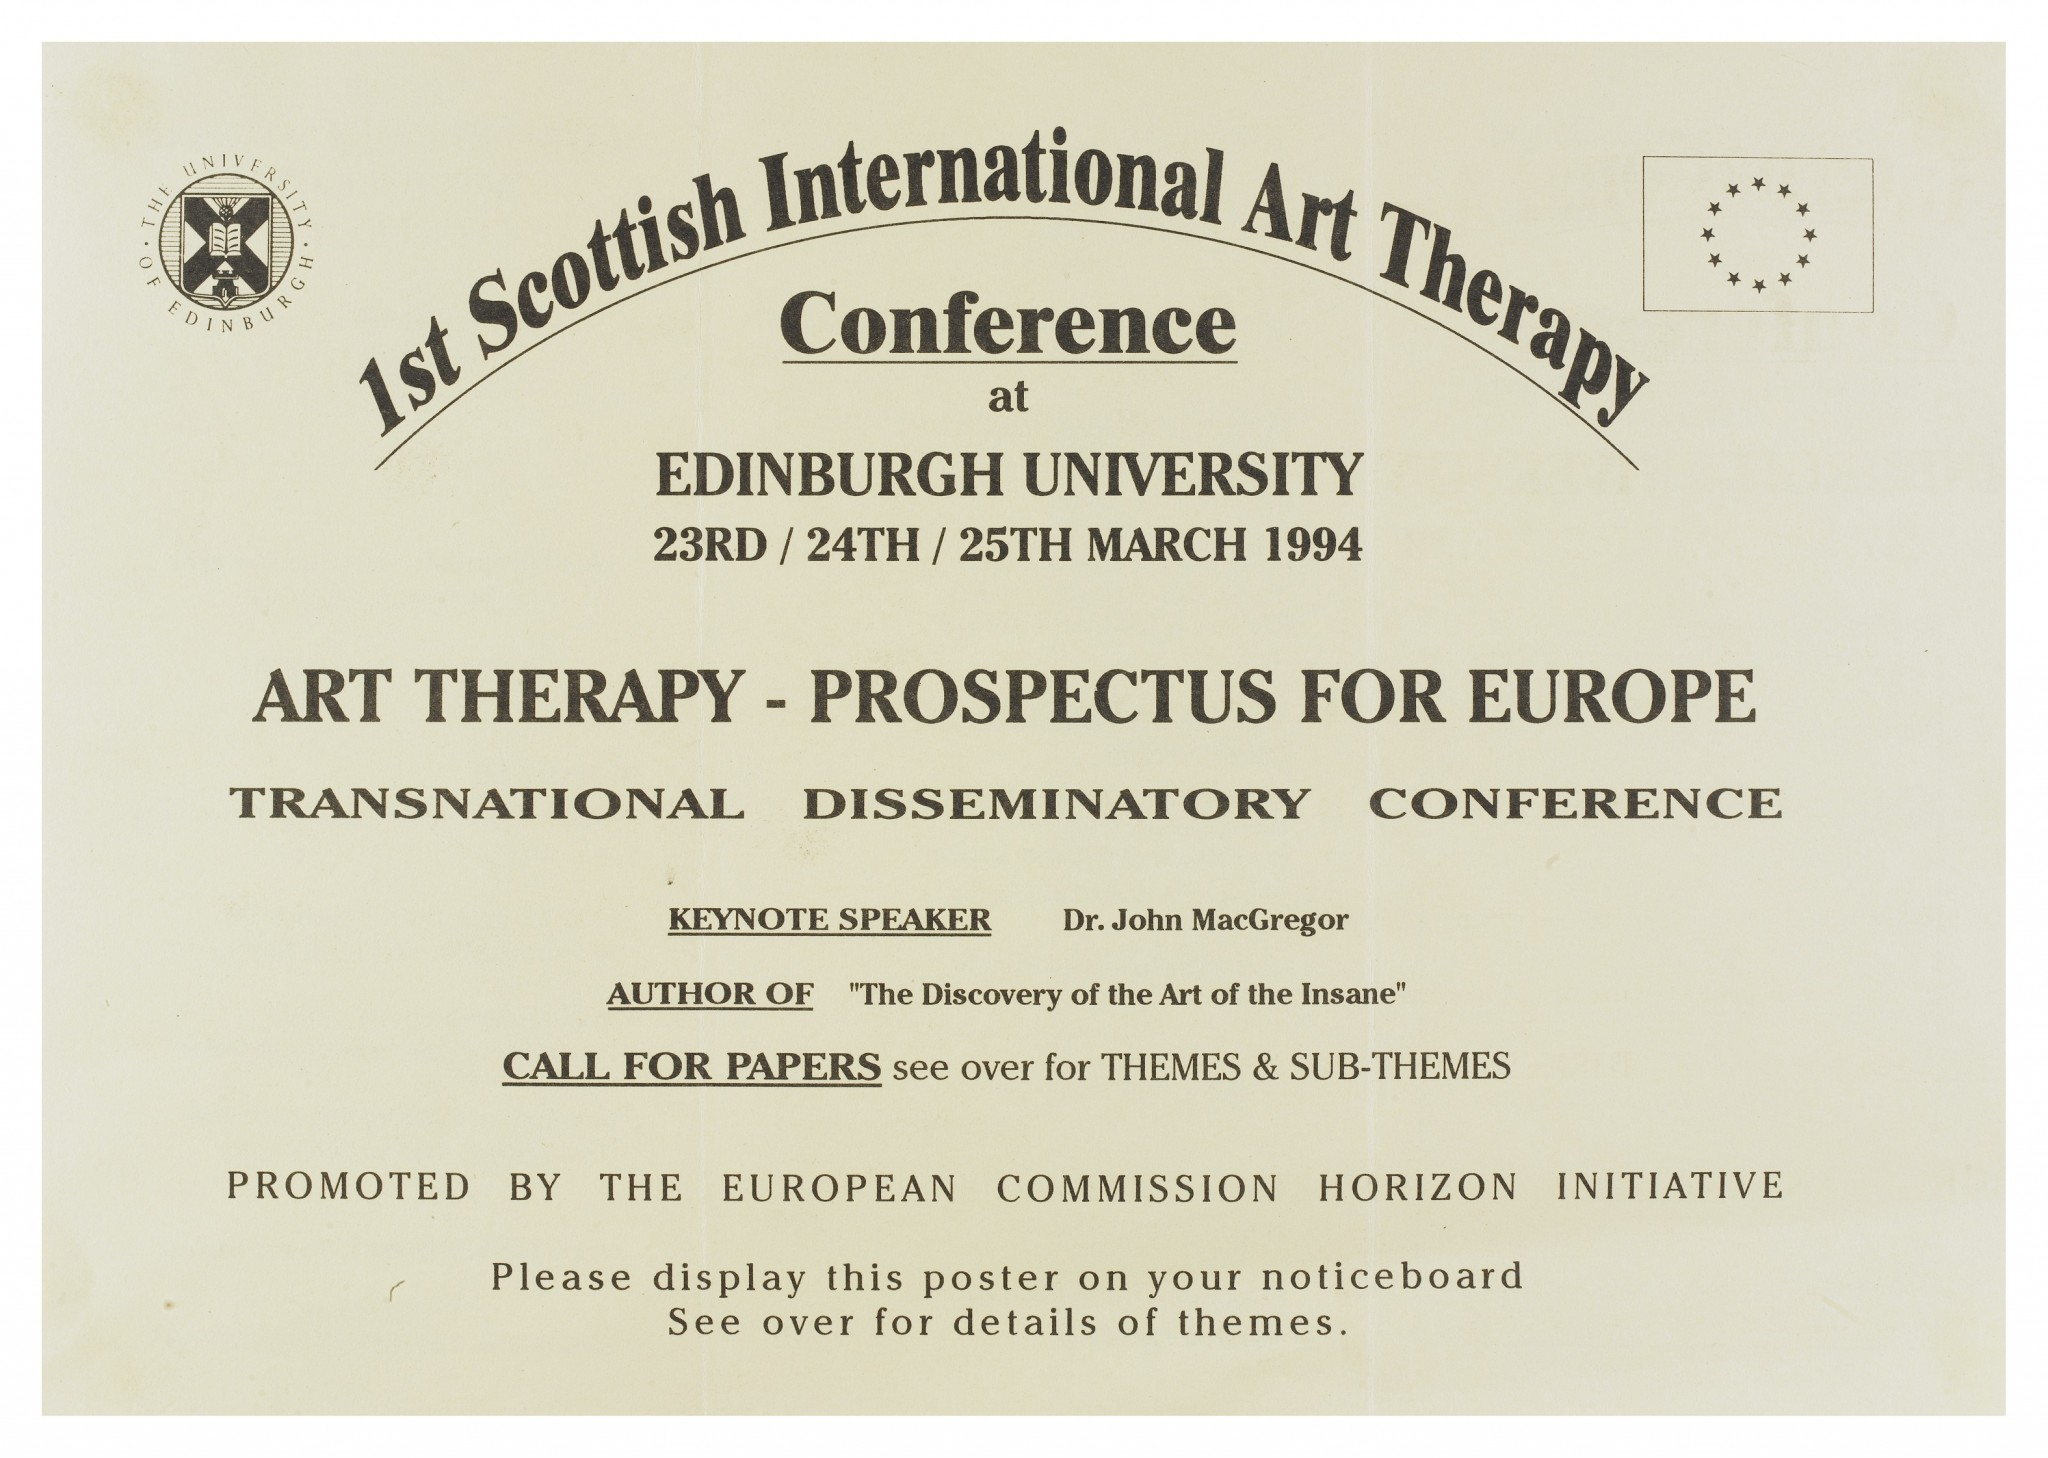 Certificate of Art Therapy